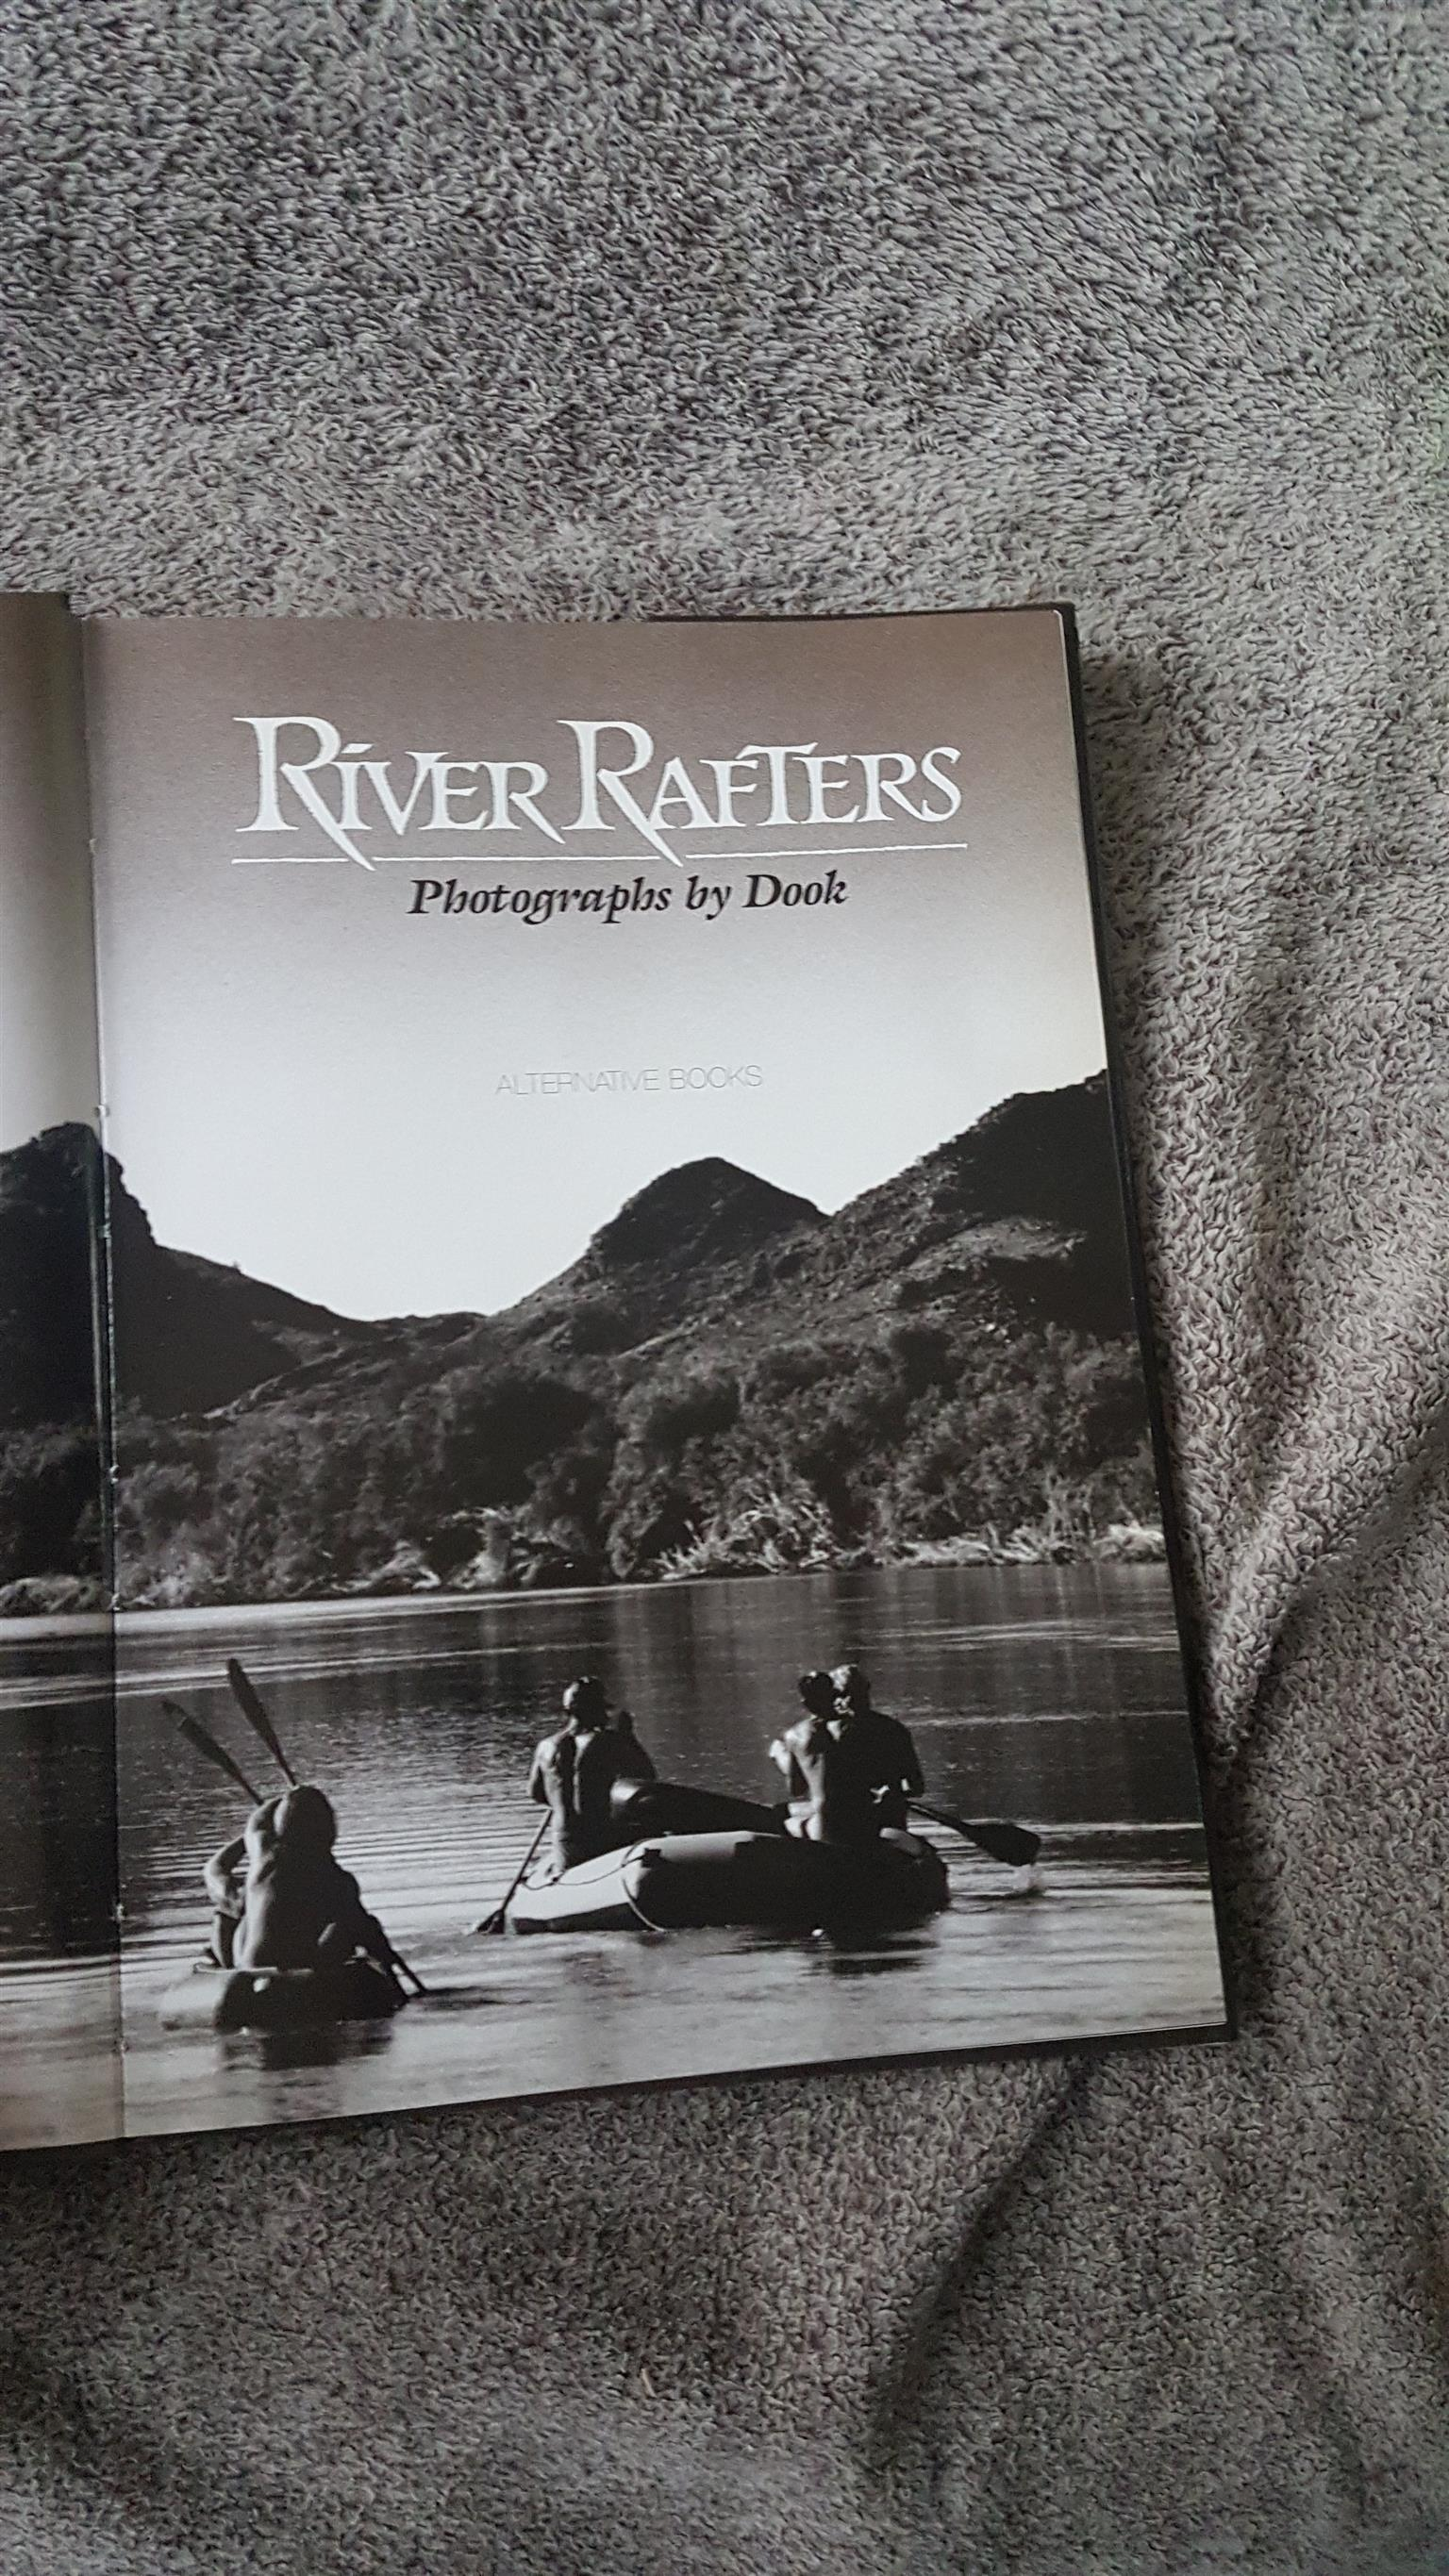 River Rafters Photography By Dook (Limited to 2000 copies only.)